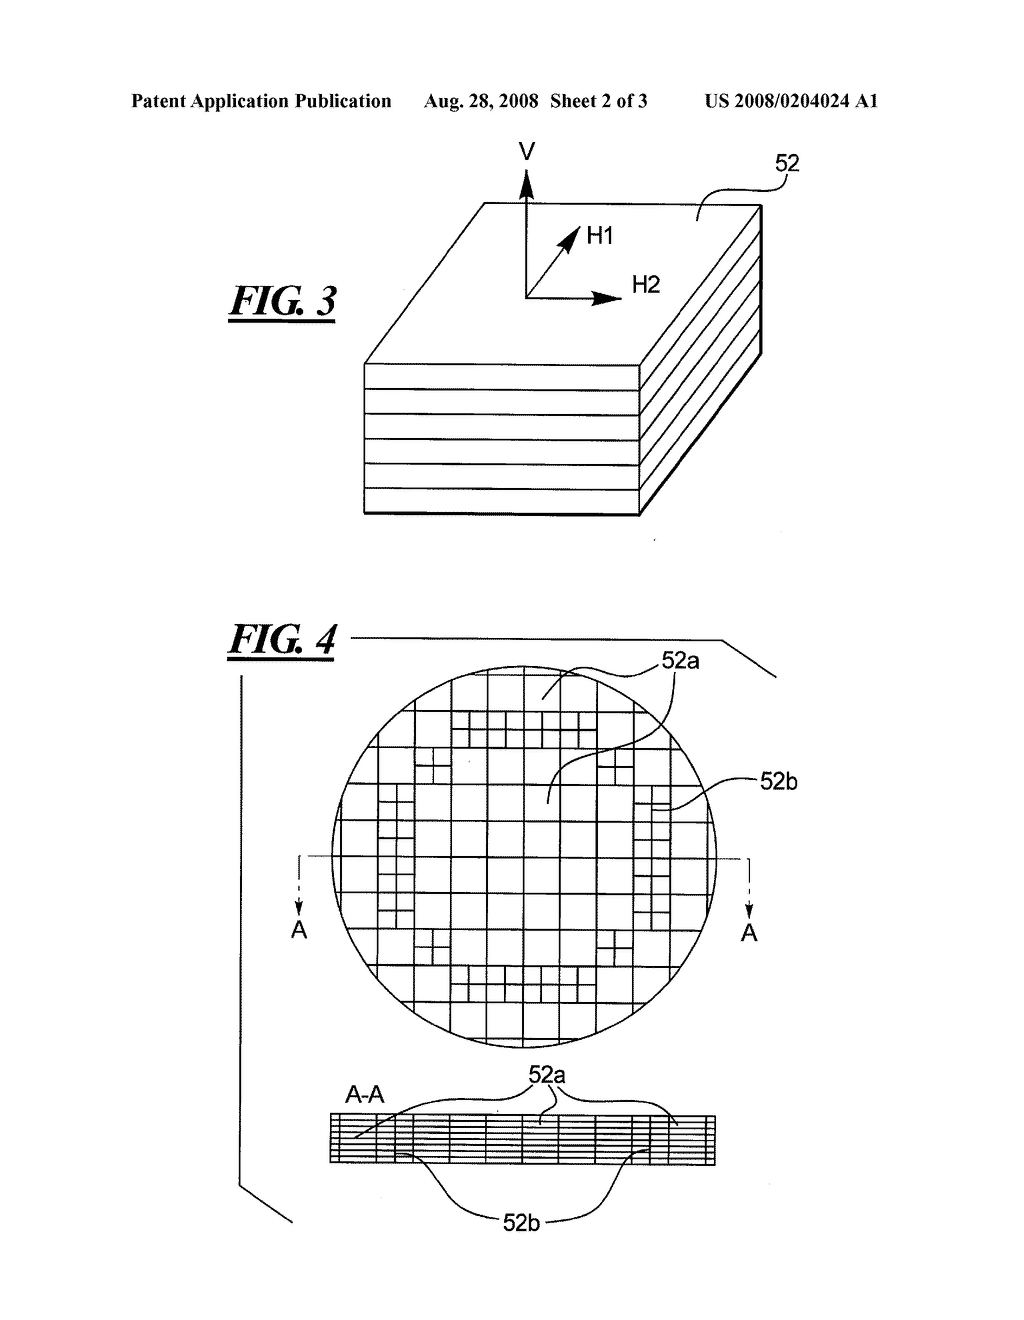 METHOD OF REDUCING EDDY CURRENTS CAUSED BY A GRADIENT MAGNETIC FIELD IN A MAGNETIC RESONANCE SYSTEM - diagram, schematic, and image 03